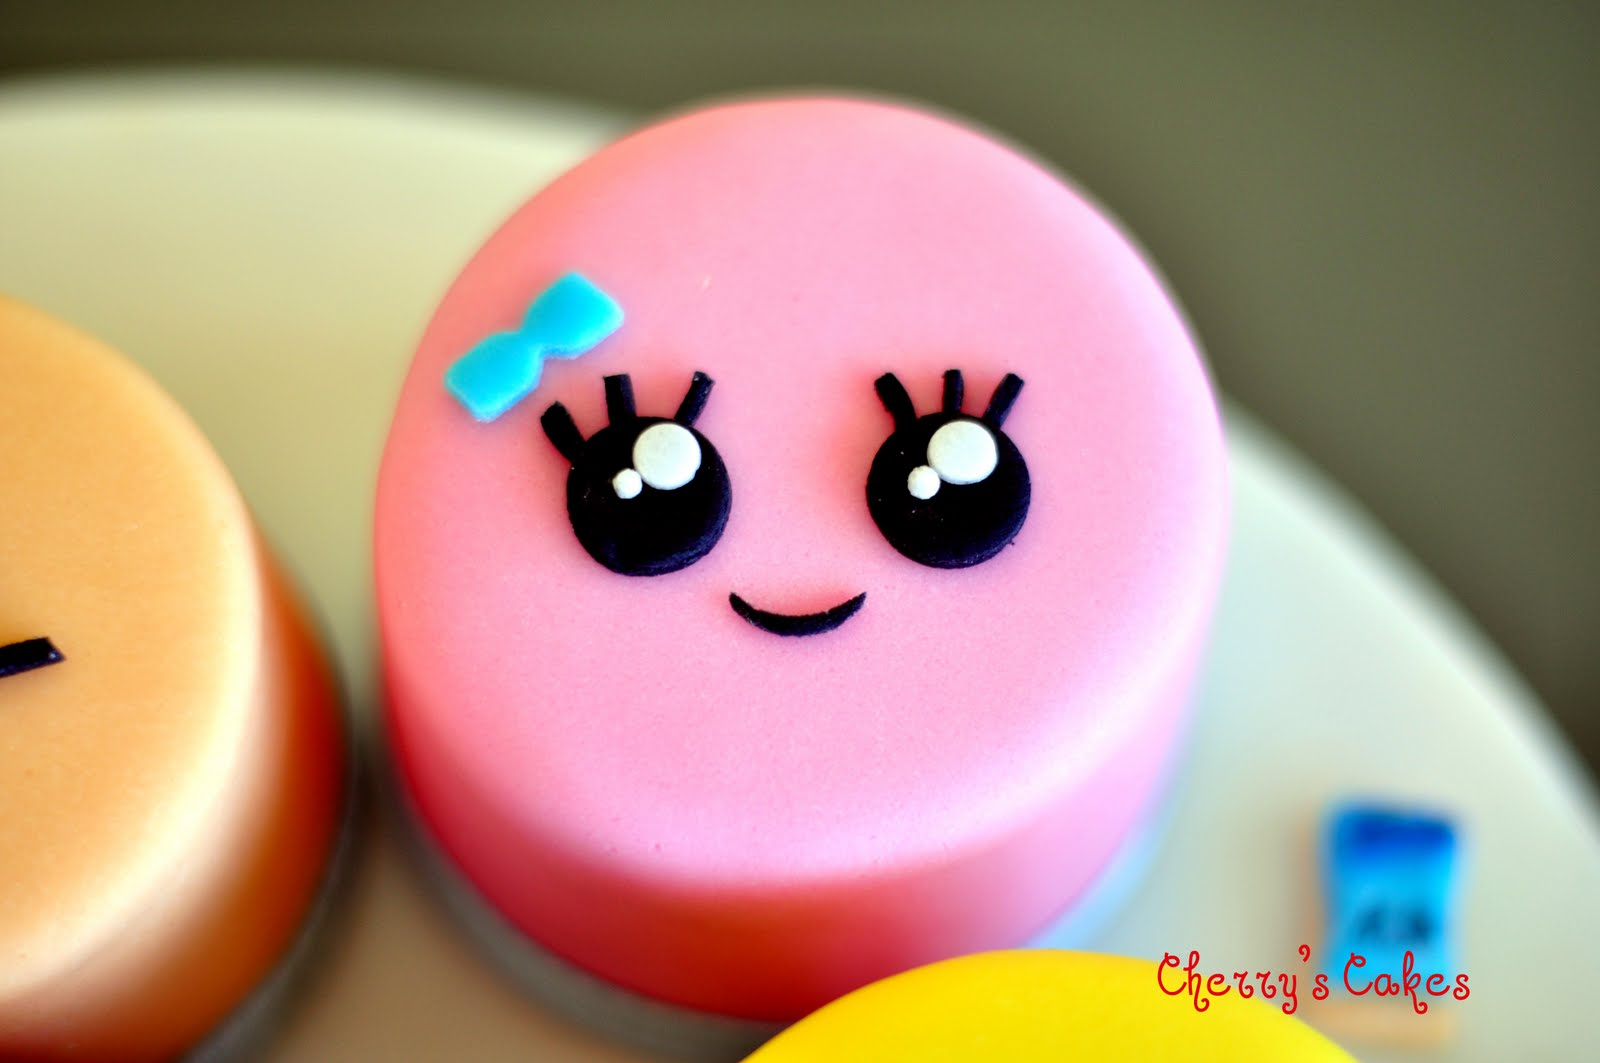 The Beancounter Kawaii Faces White Chocolate Mud Cake